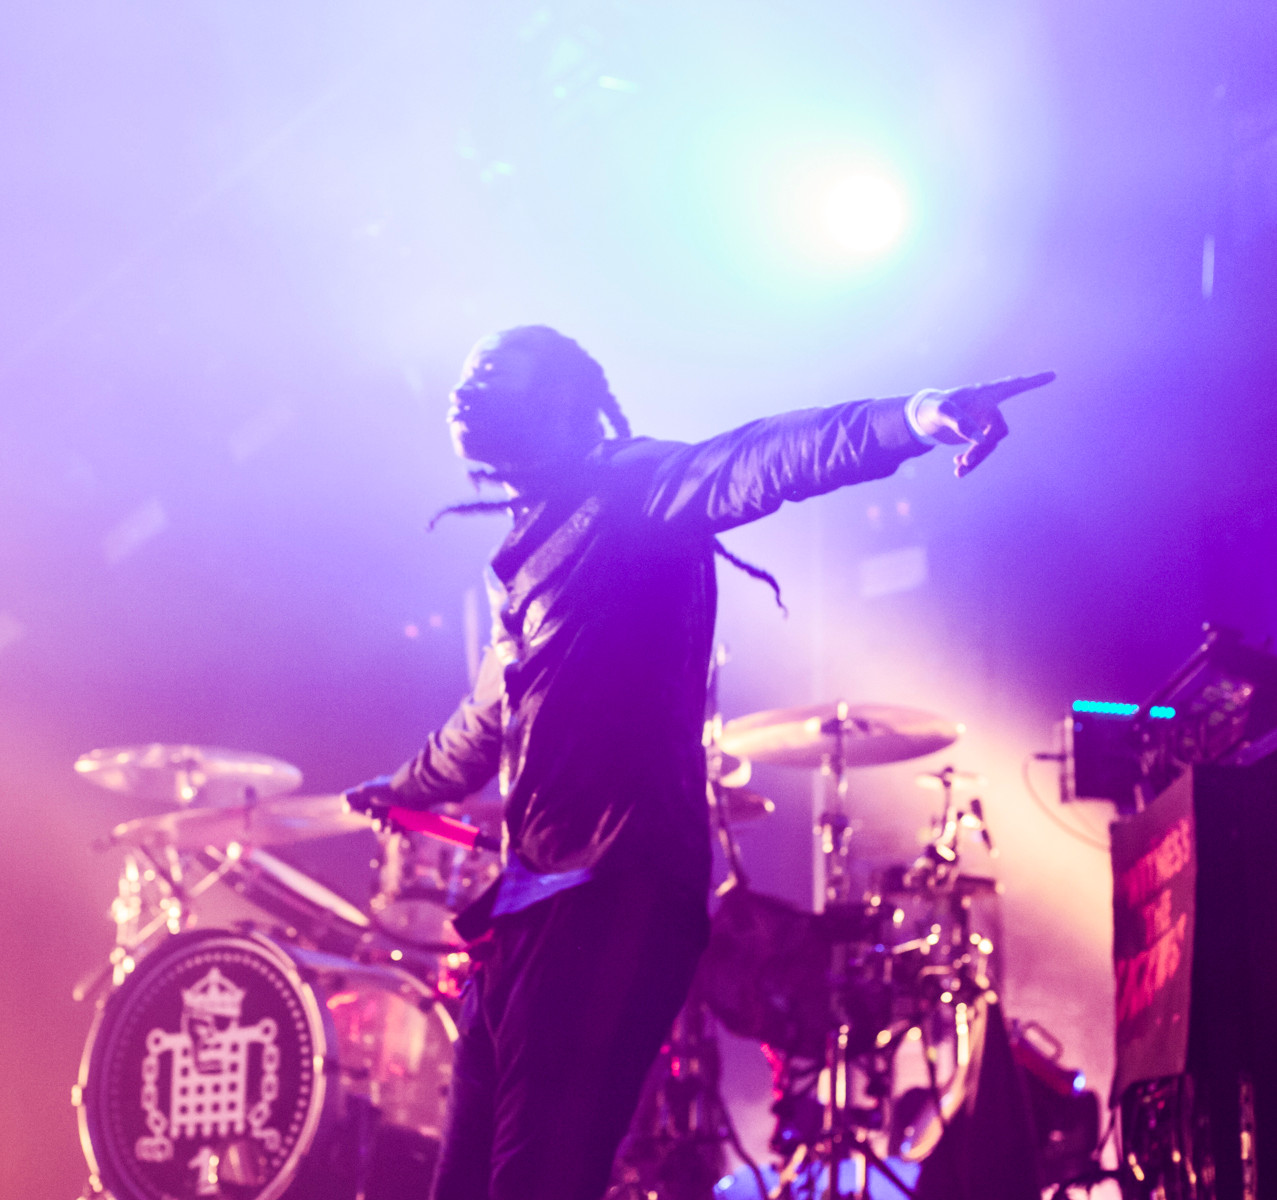 The Prodigy, Photo by Gili Dailes